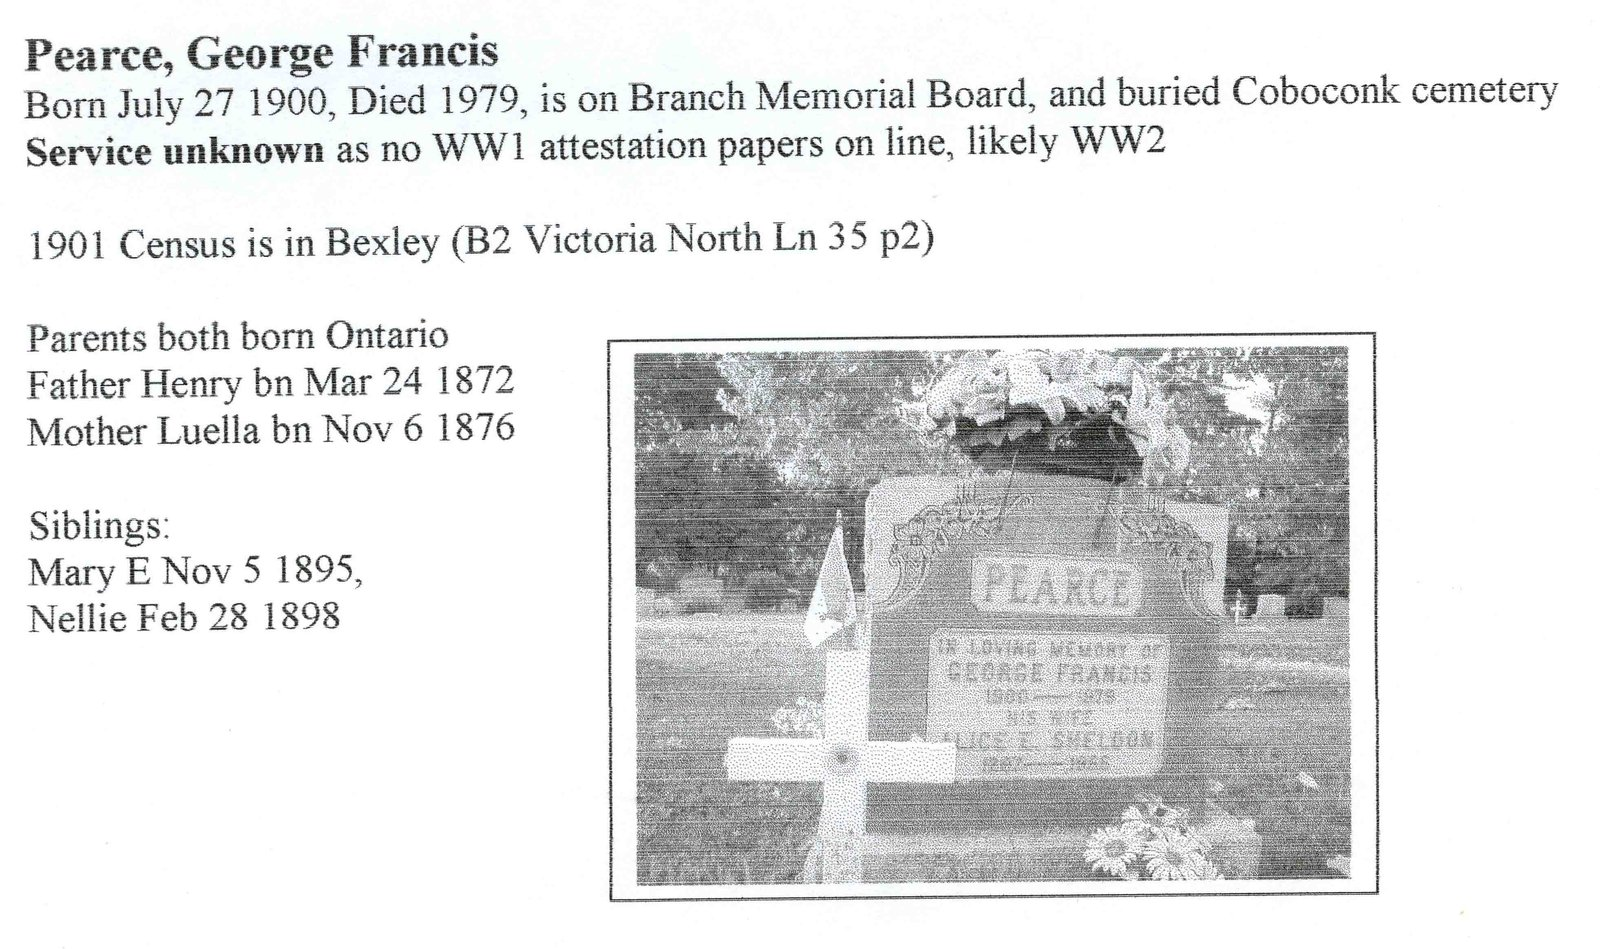 Page 286: Pearce, George Francis